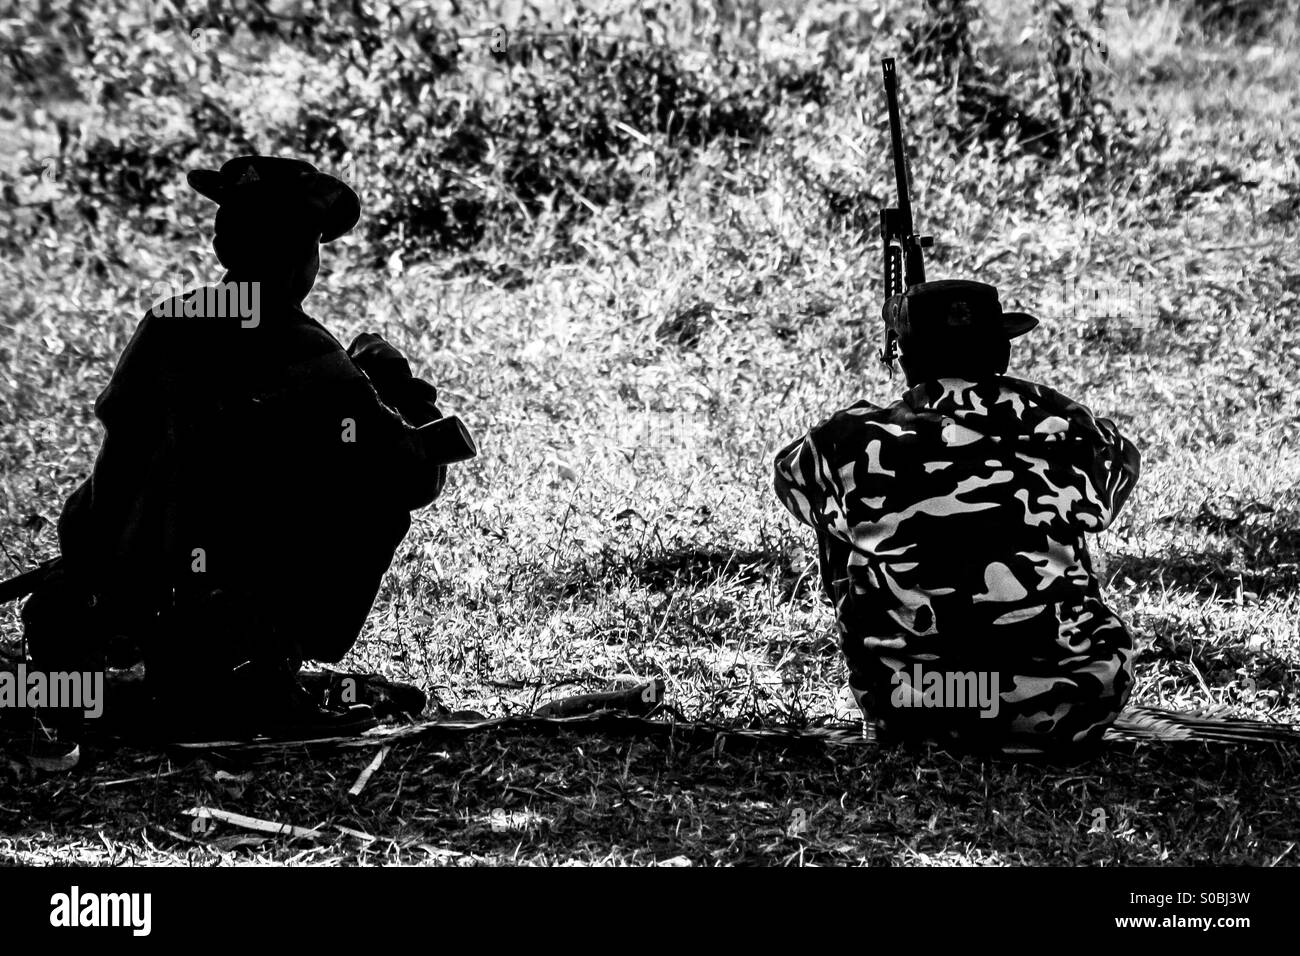 Two soldiers on watch in the Chin State, Myanmar - Stock Image